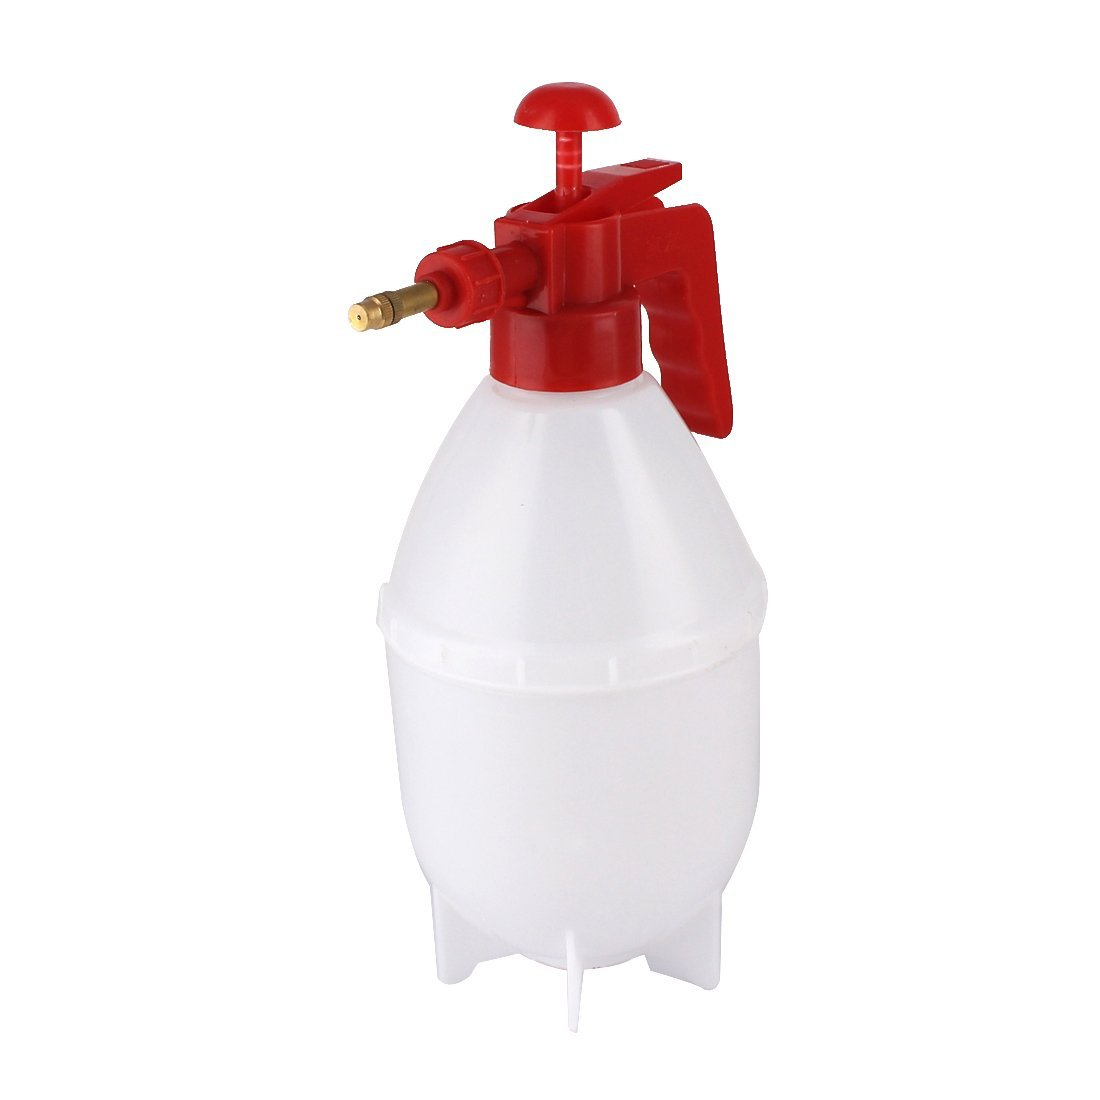 uxcell Plastic Flowers Plants Water Pressure Spray Bottle Garden Tool Red White